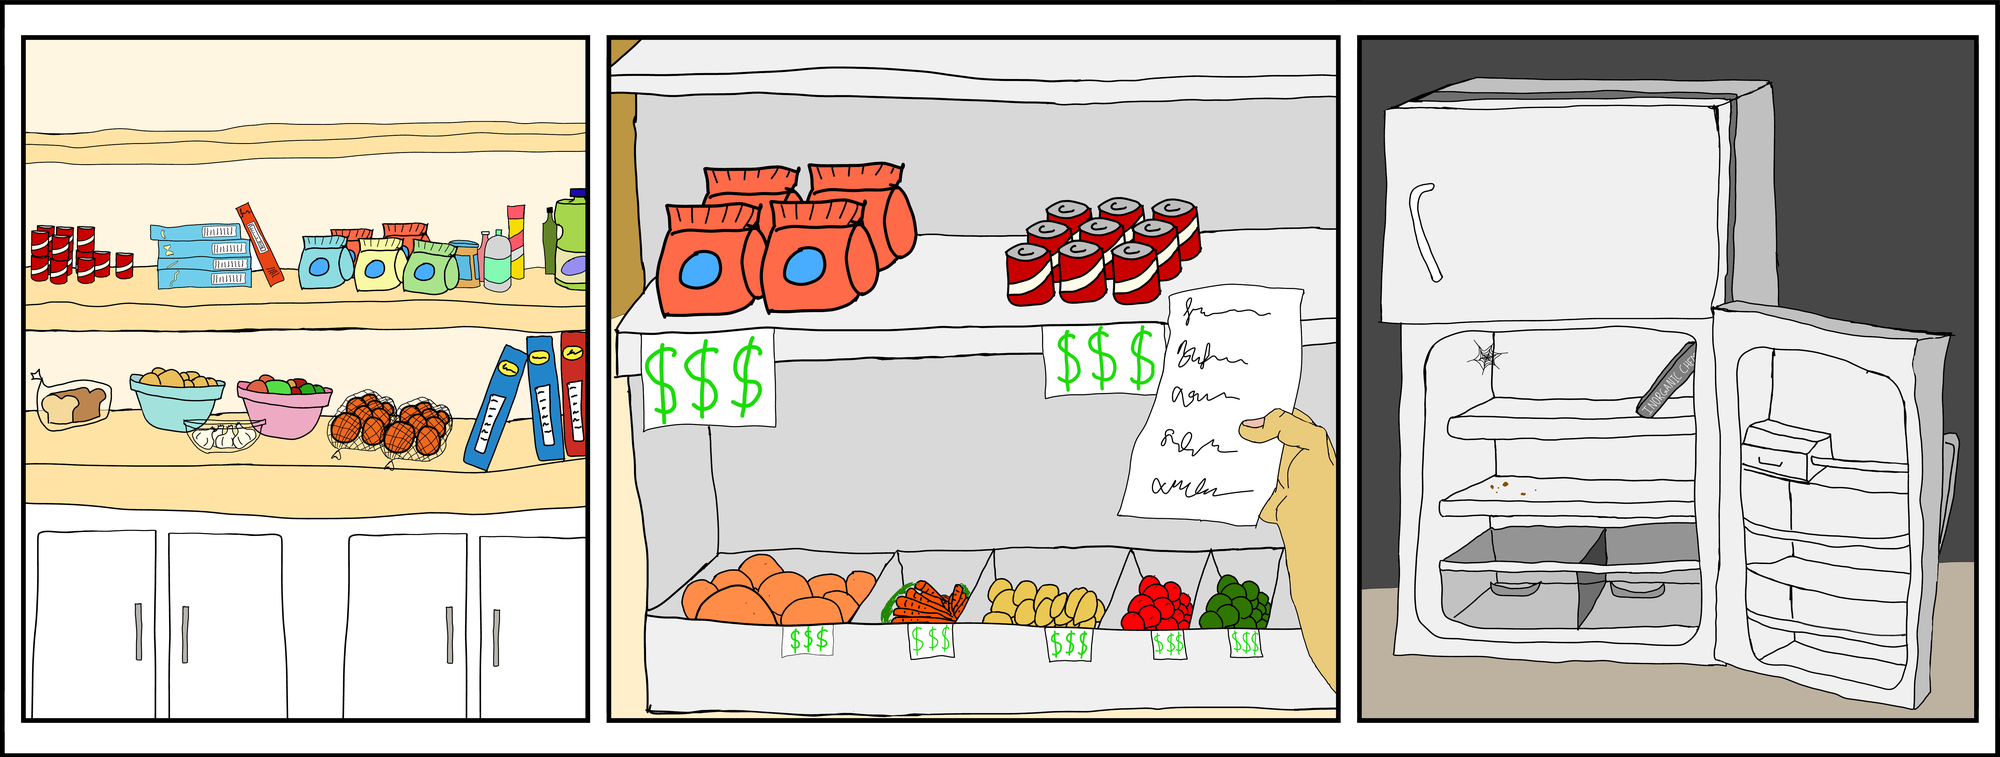 Food insecurity scrut graphic